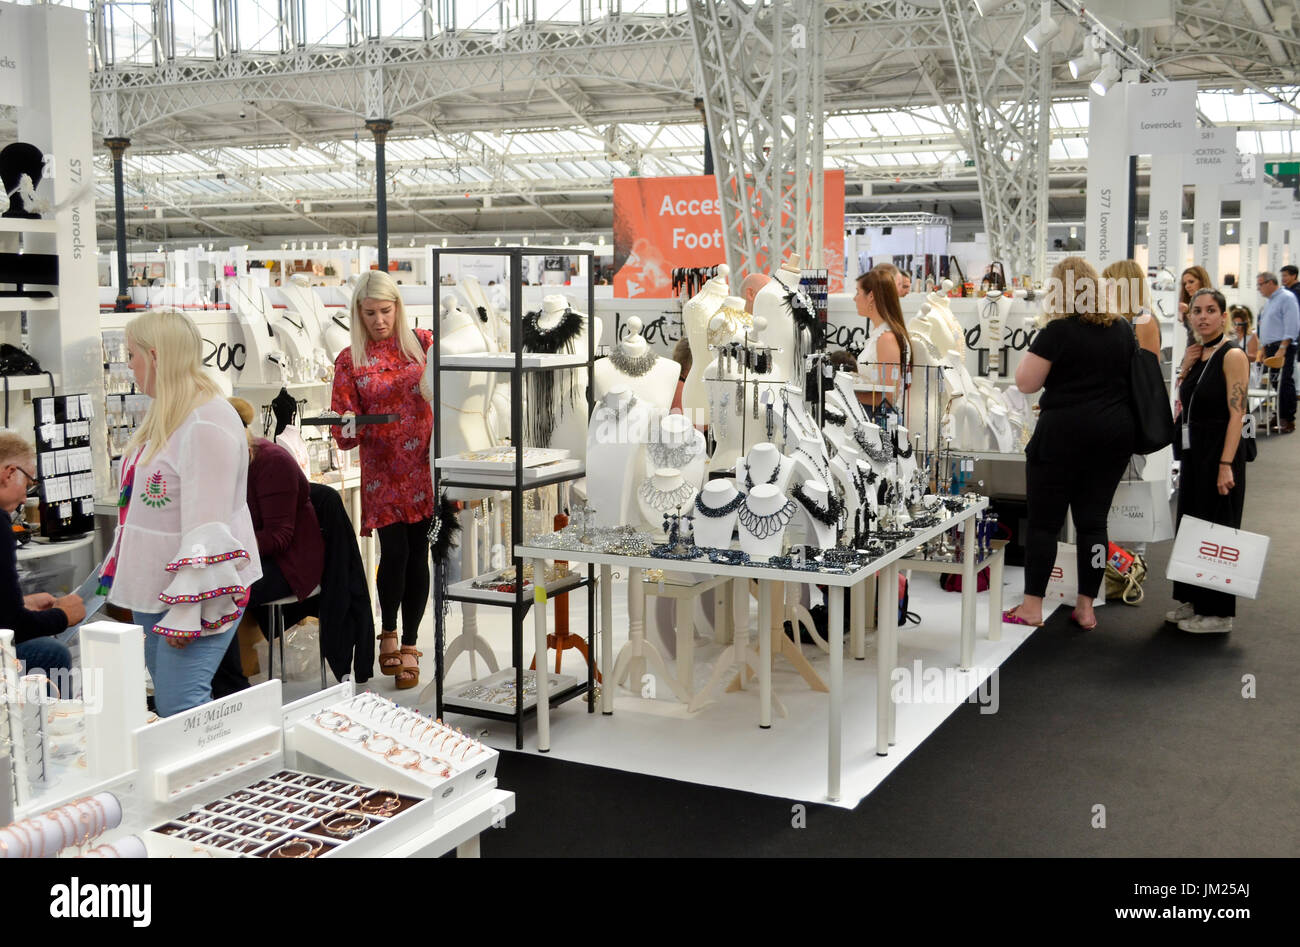 Trade Stands Olympia : Fashion buyers browse jewellery stands at pure london olympia stock